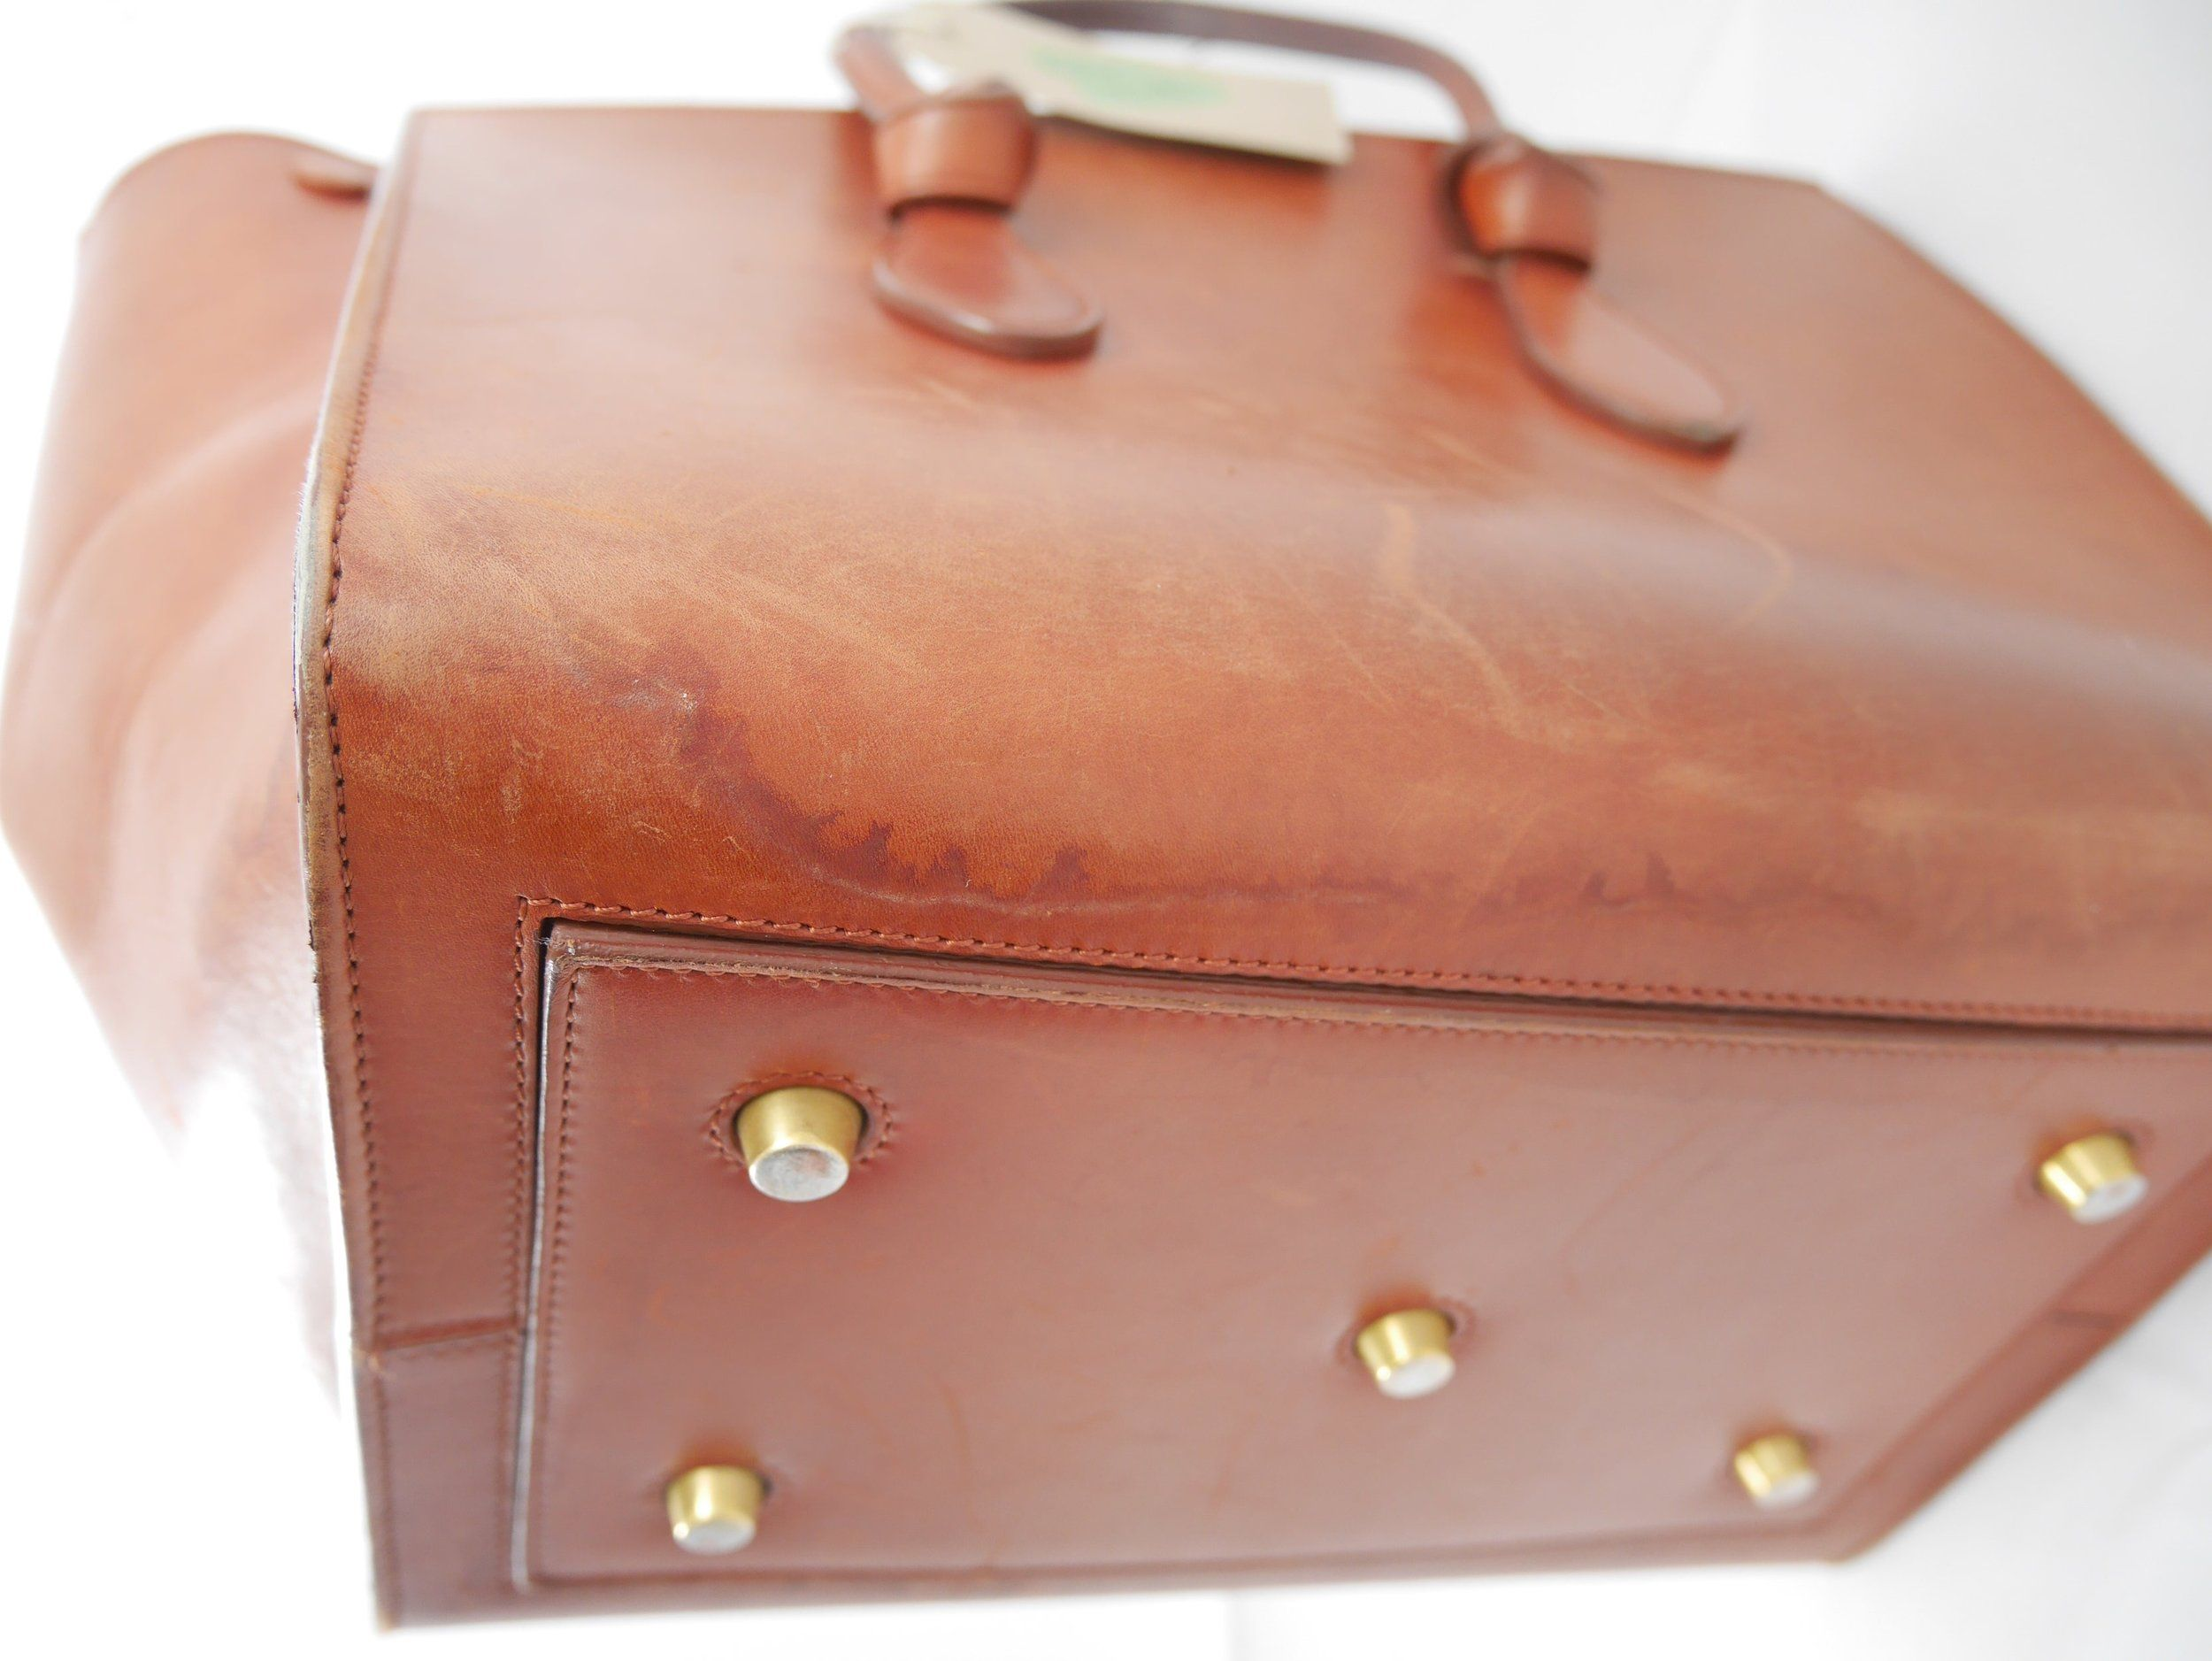 Before: visible watermarks on leather exterior